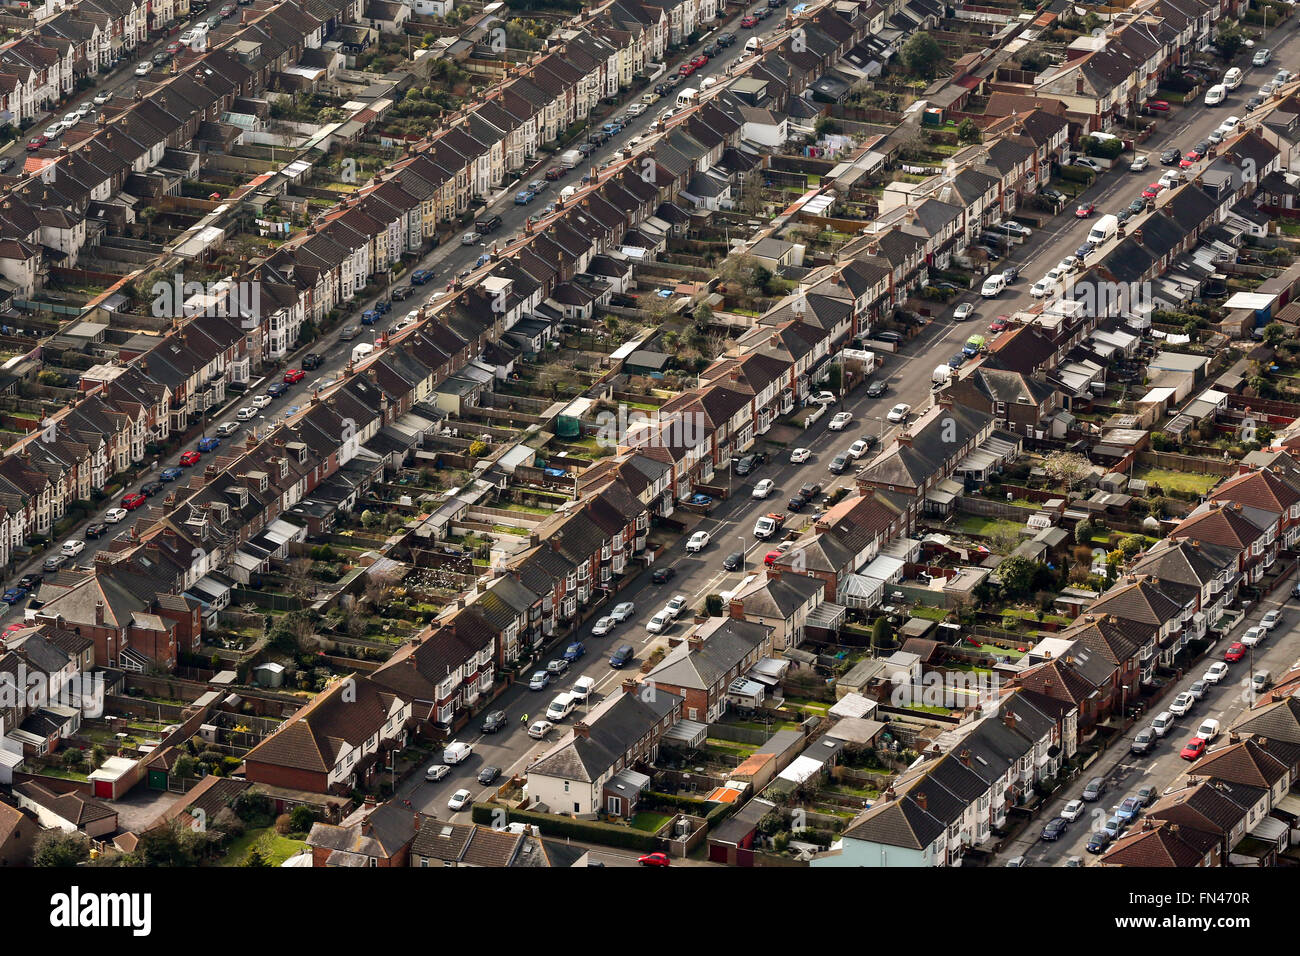 Aerial view of homes in Portsmouth, Hampshire, UK - Stock Image